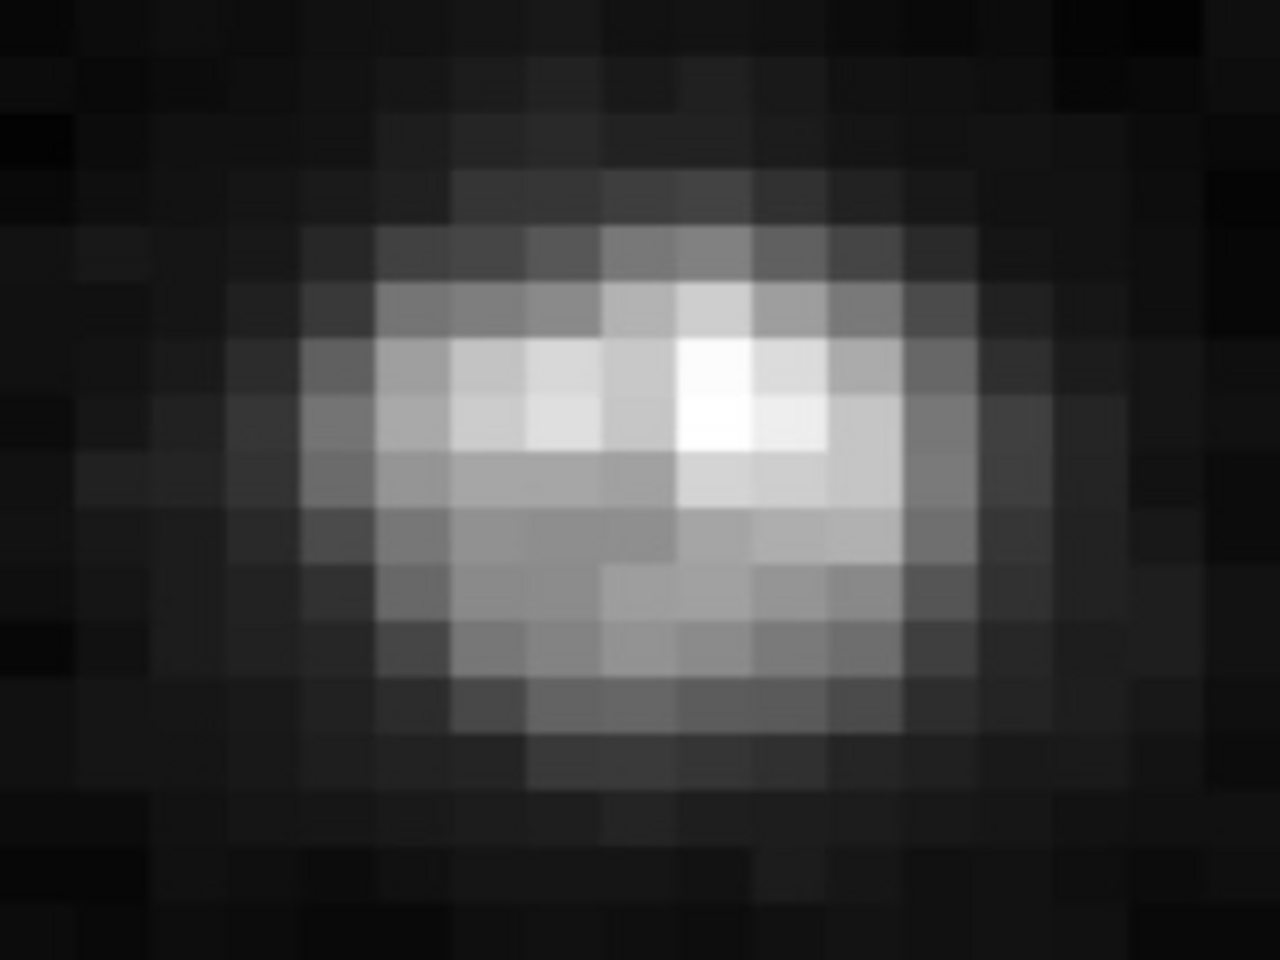 A pixelated photograph of Pluto